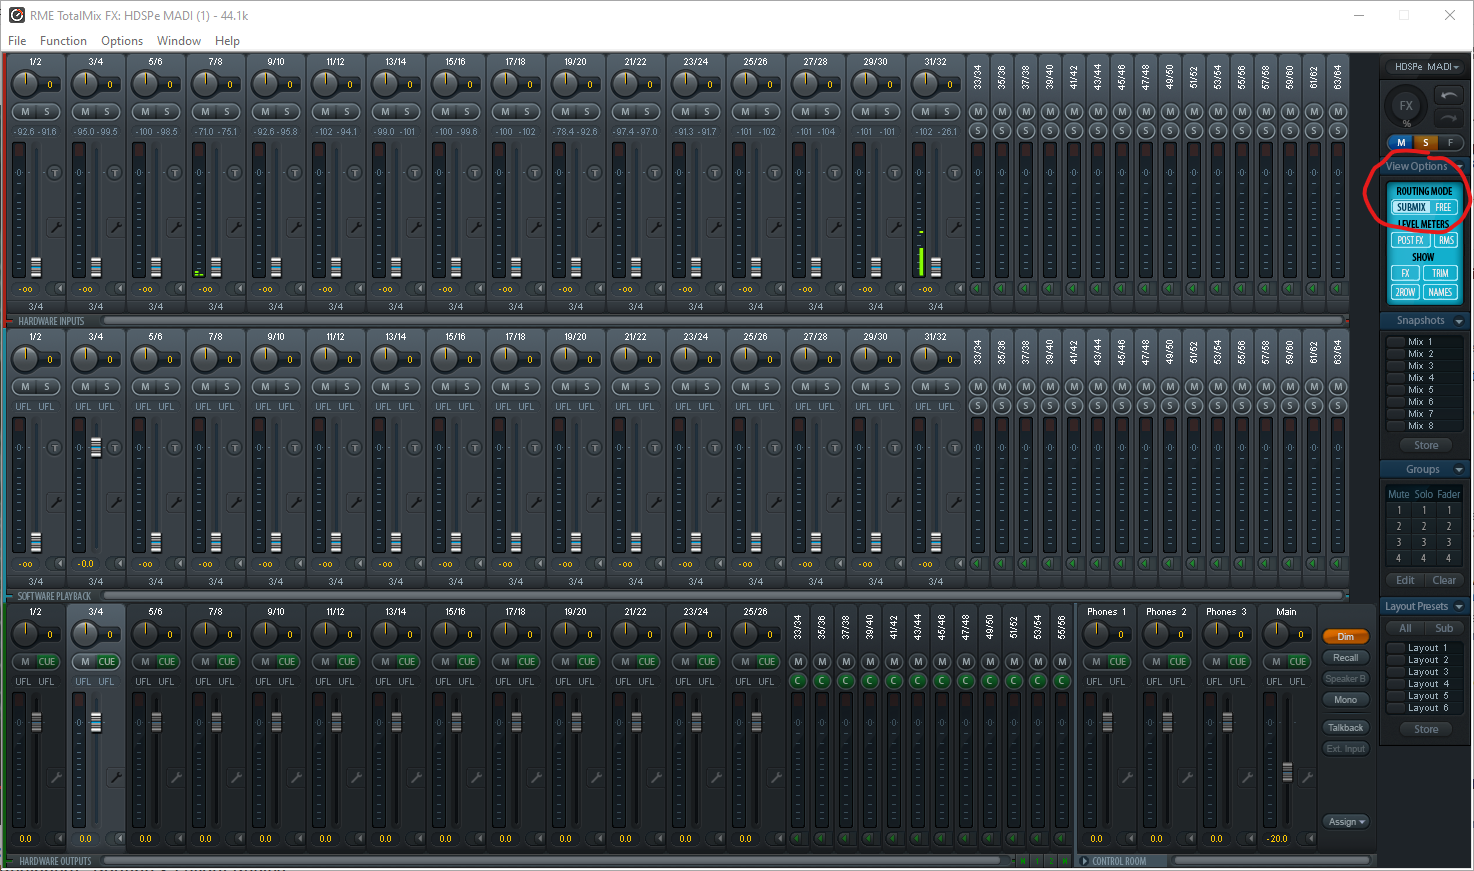 tmfx_routing.png